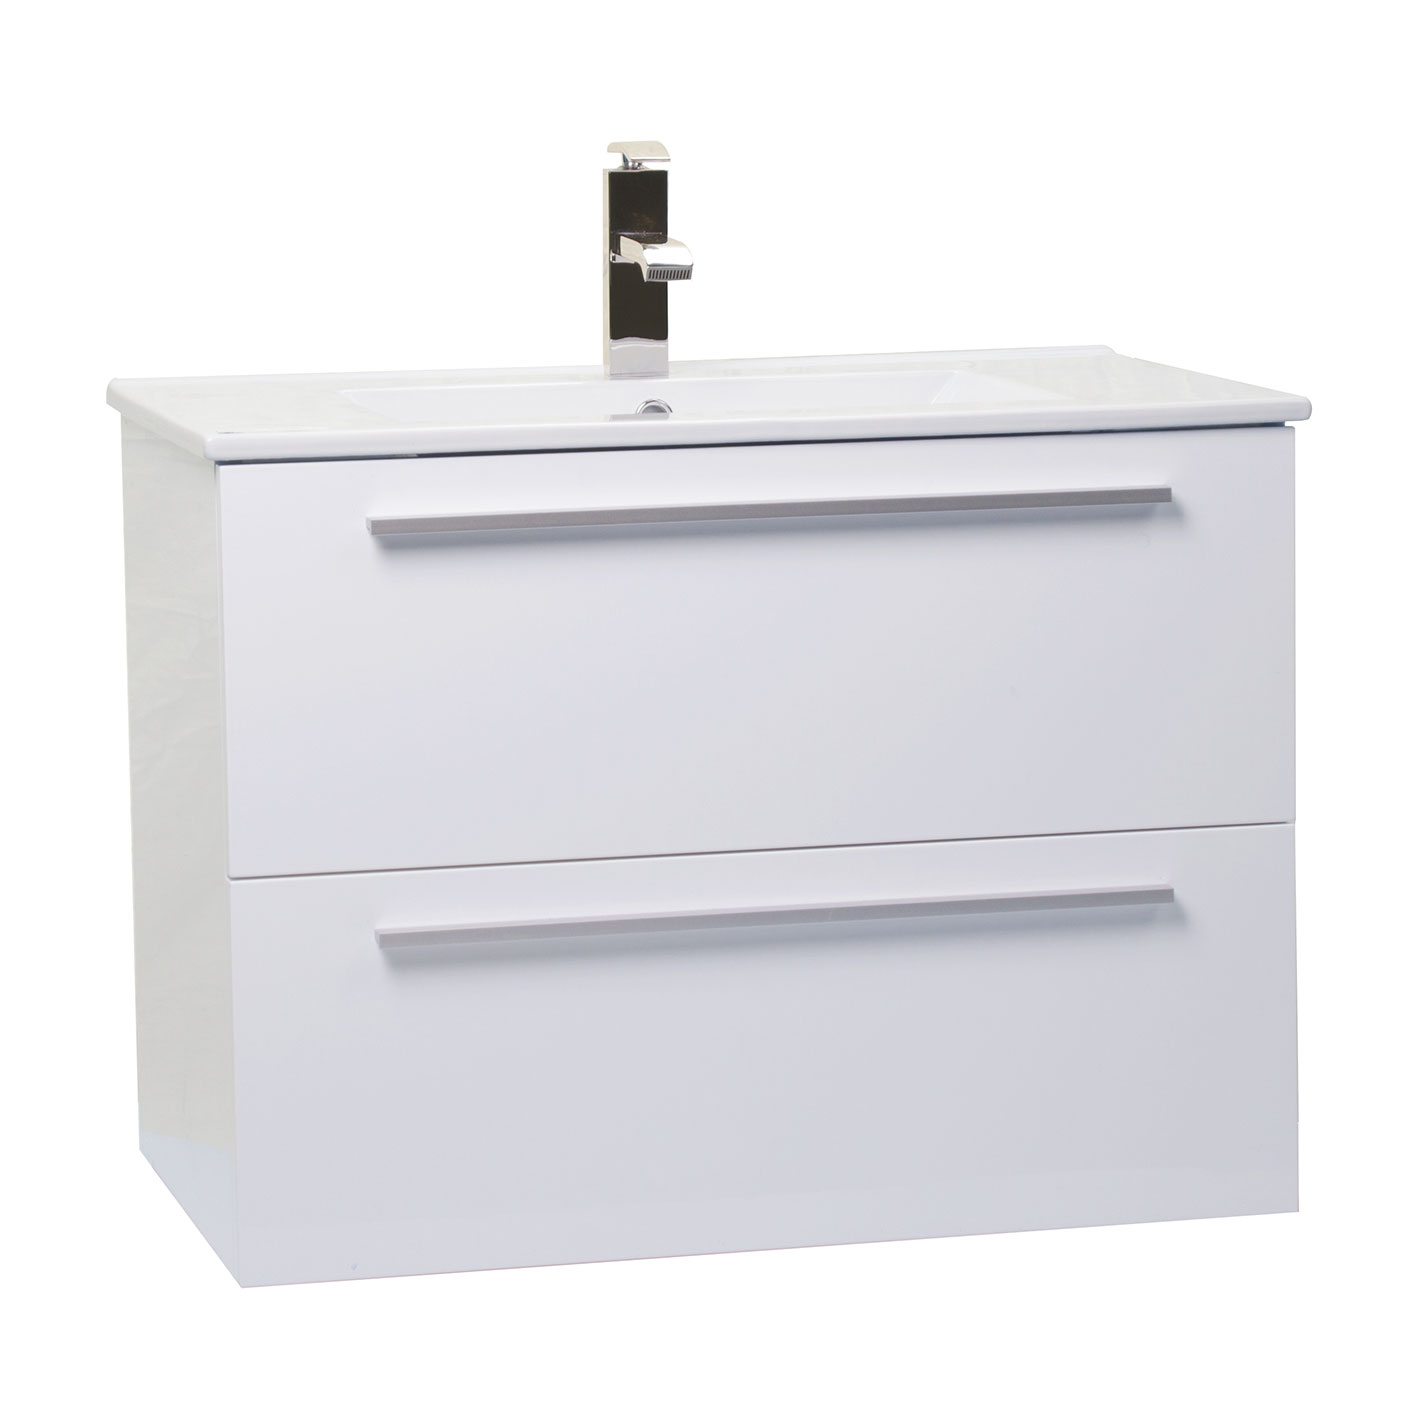 Buy nola 30 inch wall mount modern bathroom vanity gloss for Bathroom wall vanity cabinets